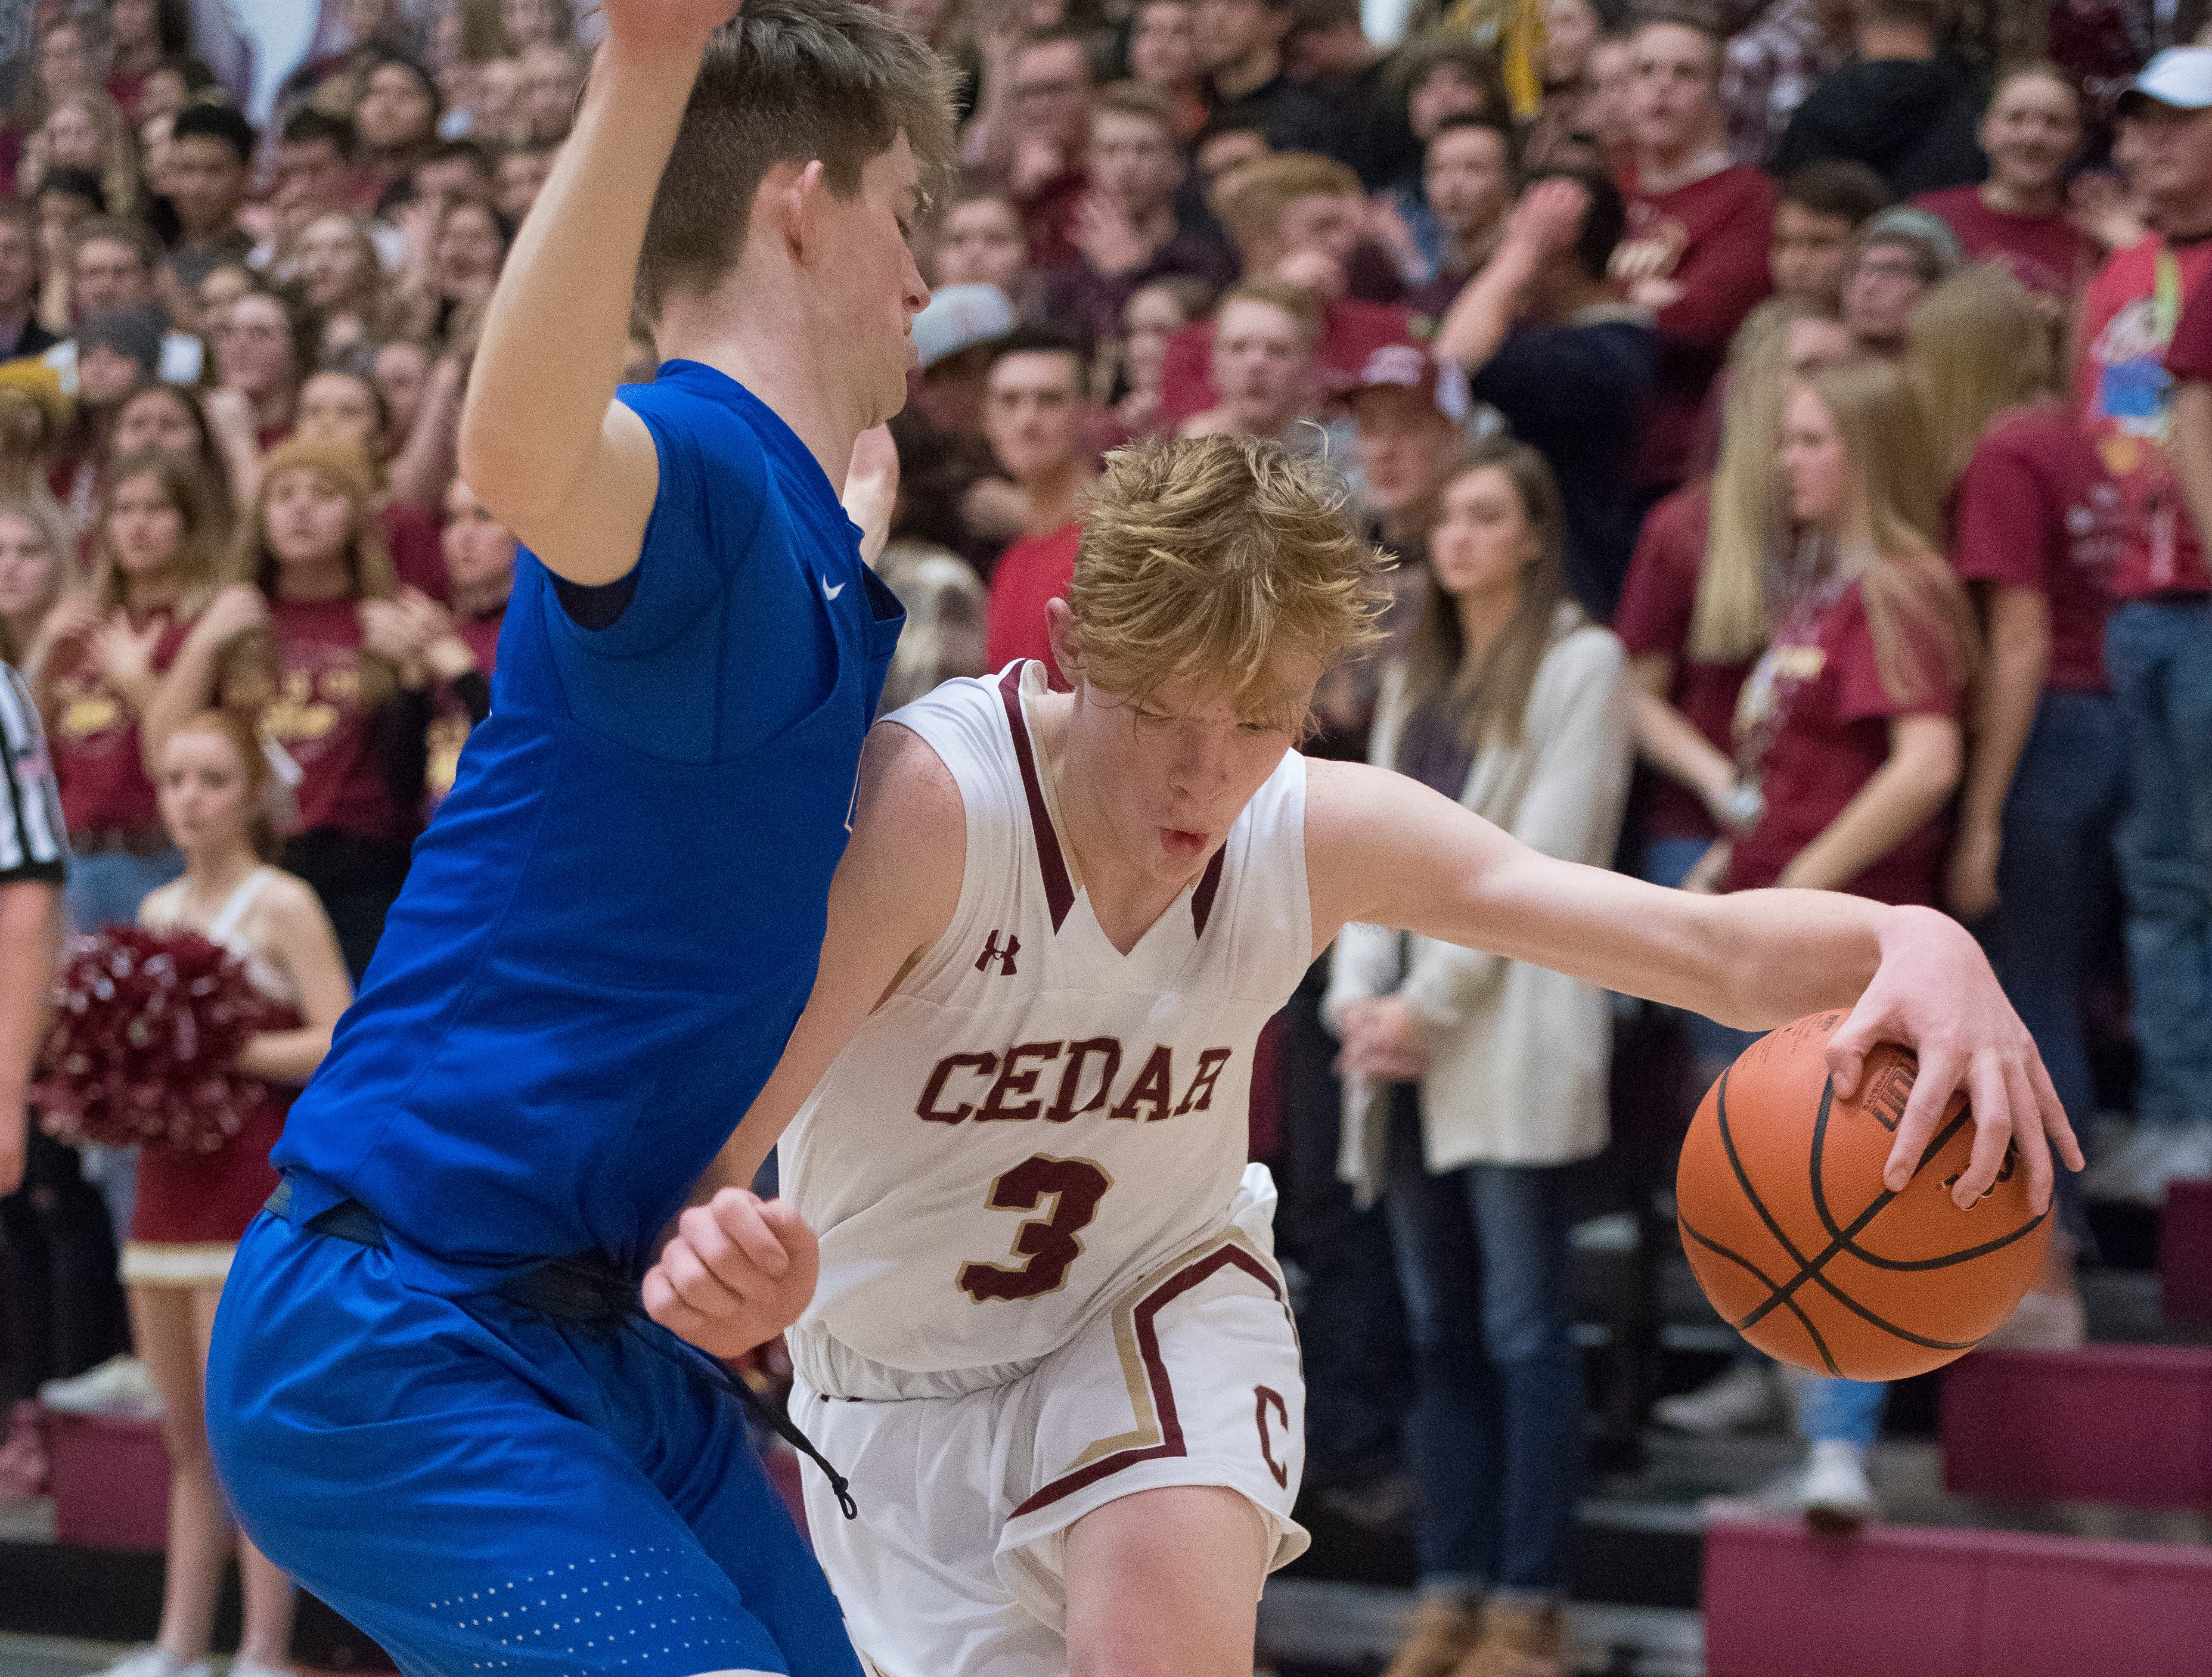 Cedar High School sophomore Gaige Savage (3) pushes along the base line against Dixie at CHS Wednesday, December 19, 2018. Trading the lead all game, Dixie won, 49-45.